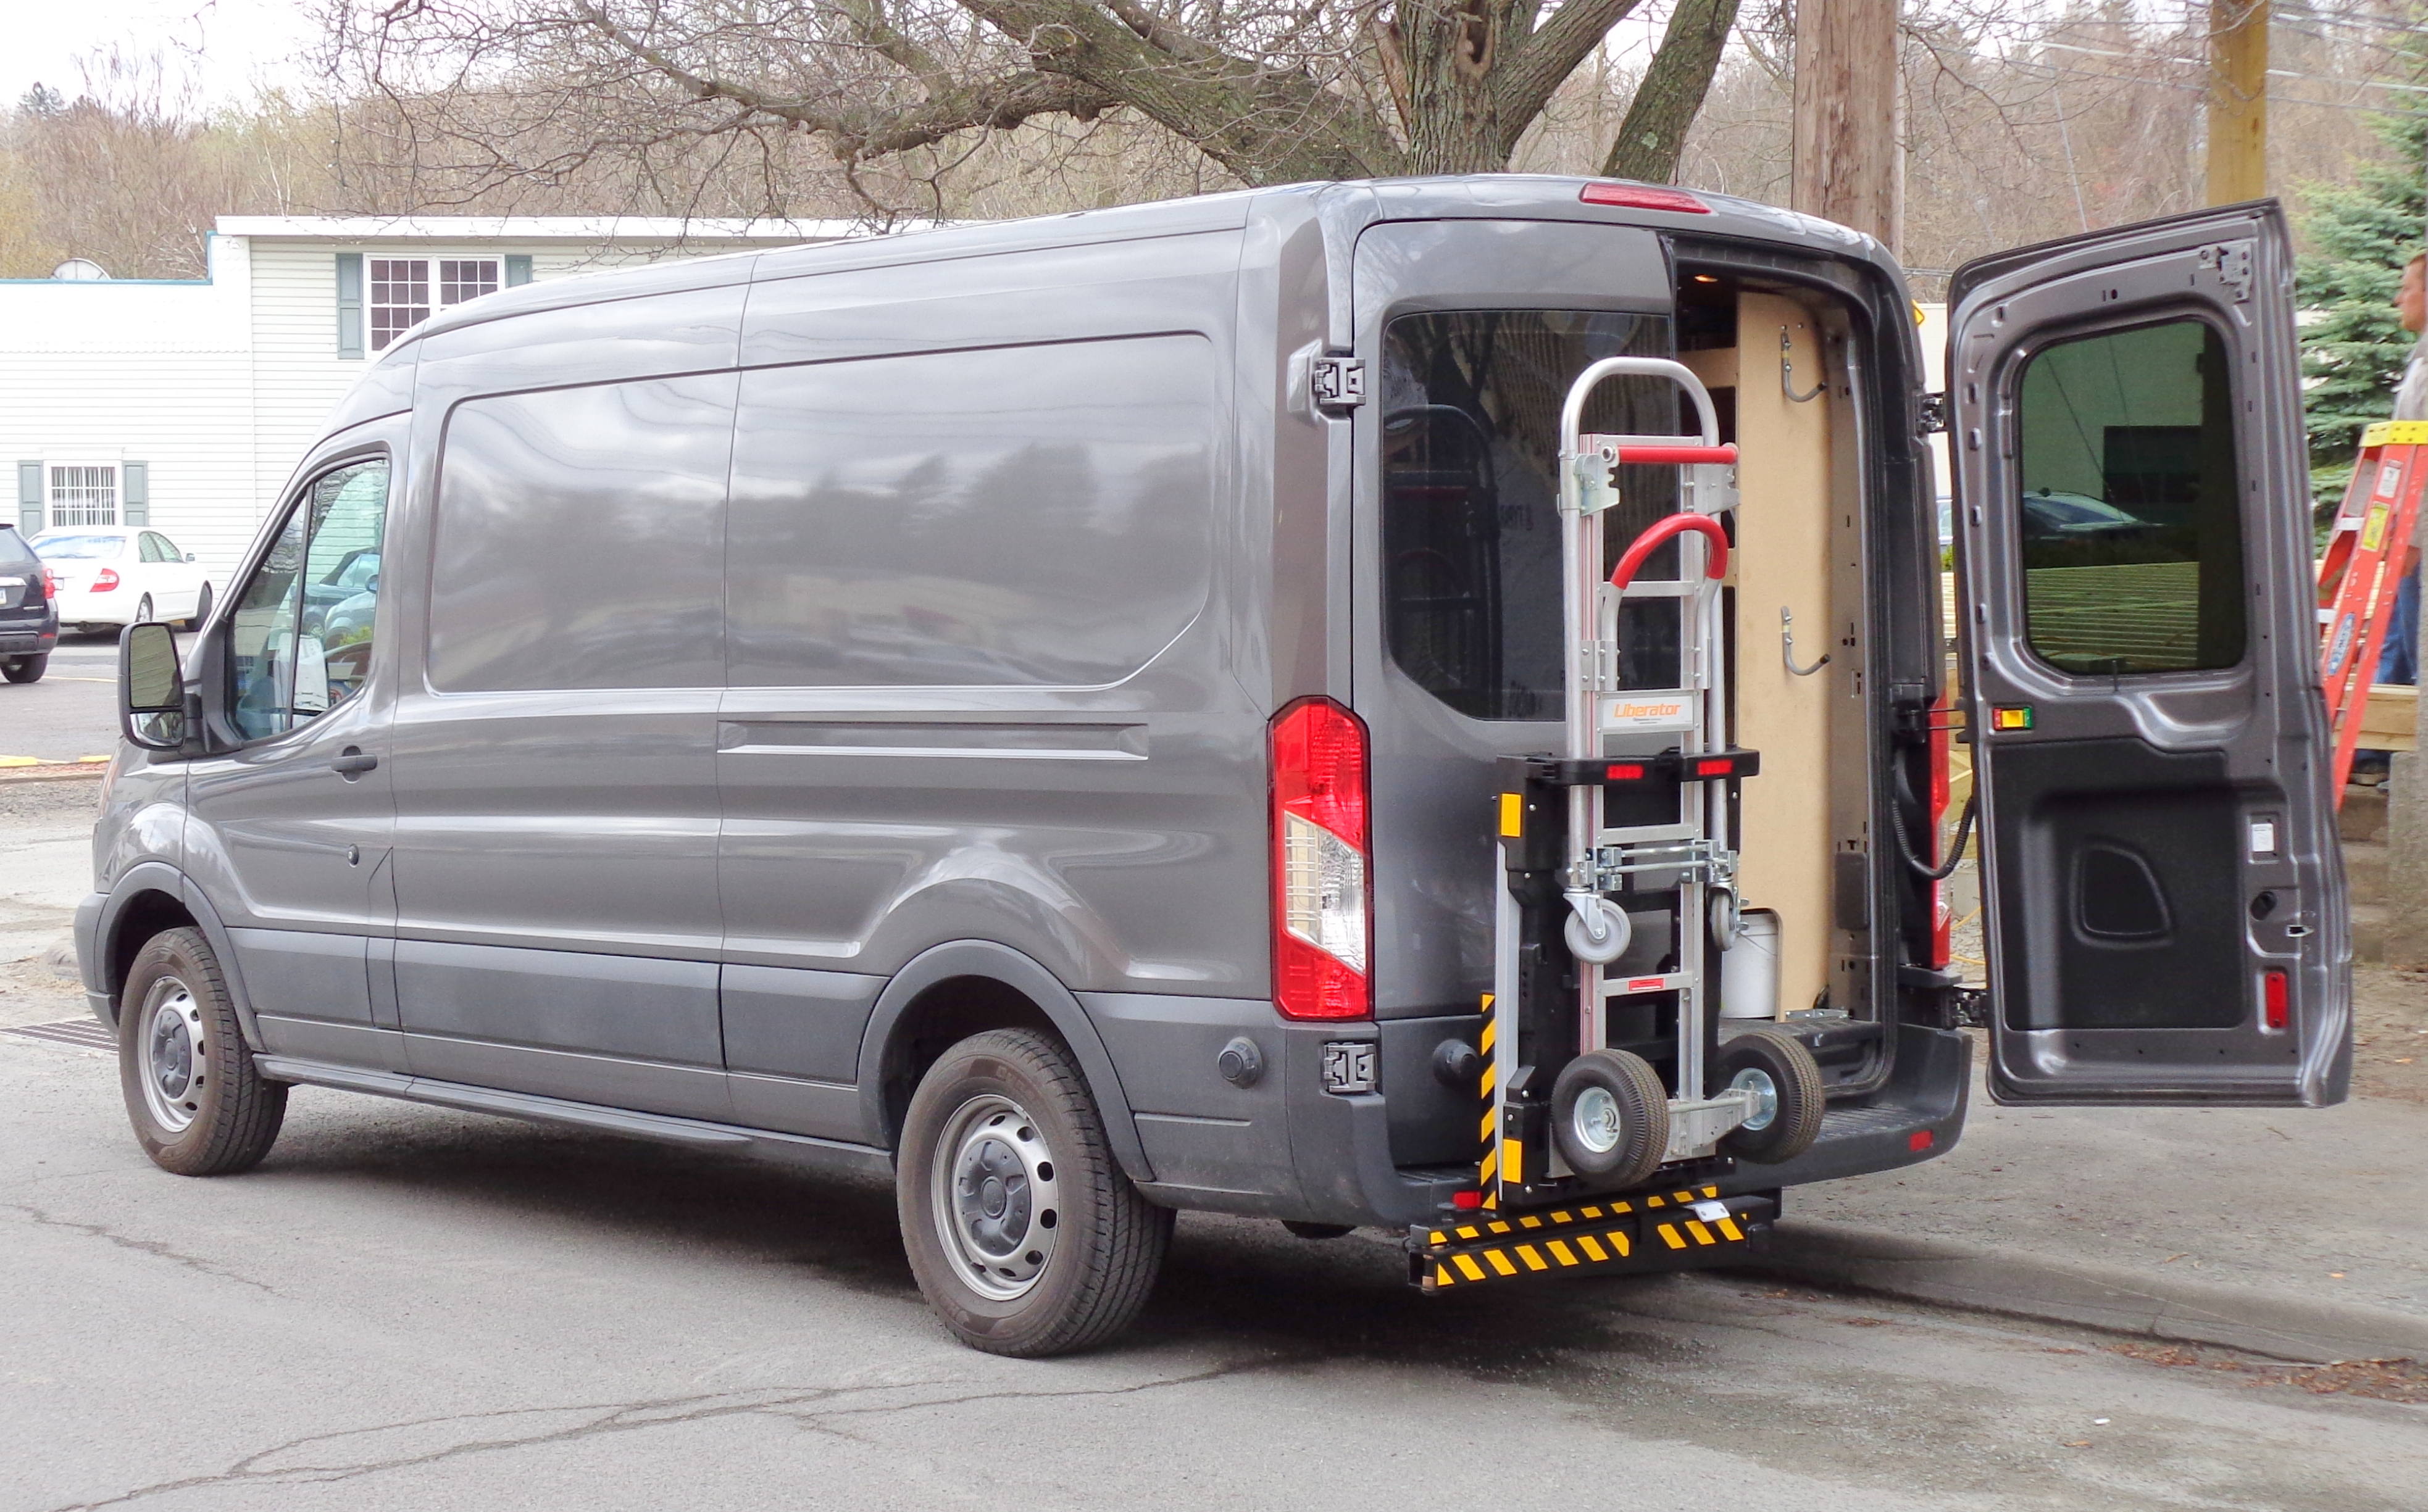 File Ford Transit 250 cargo van HTS Systems Wikimedia mons